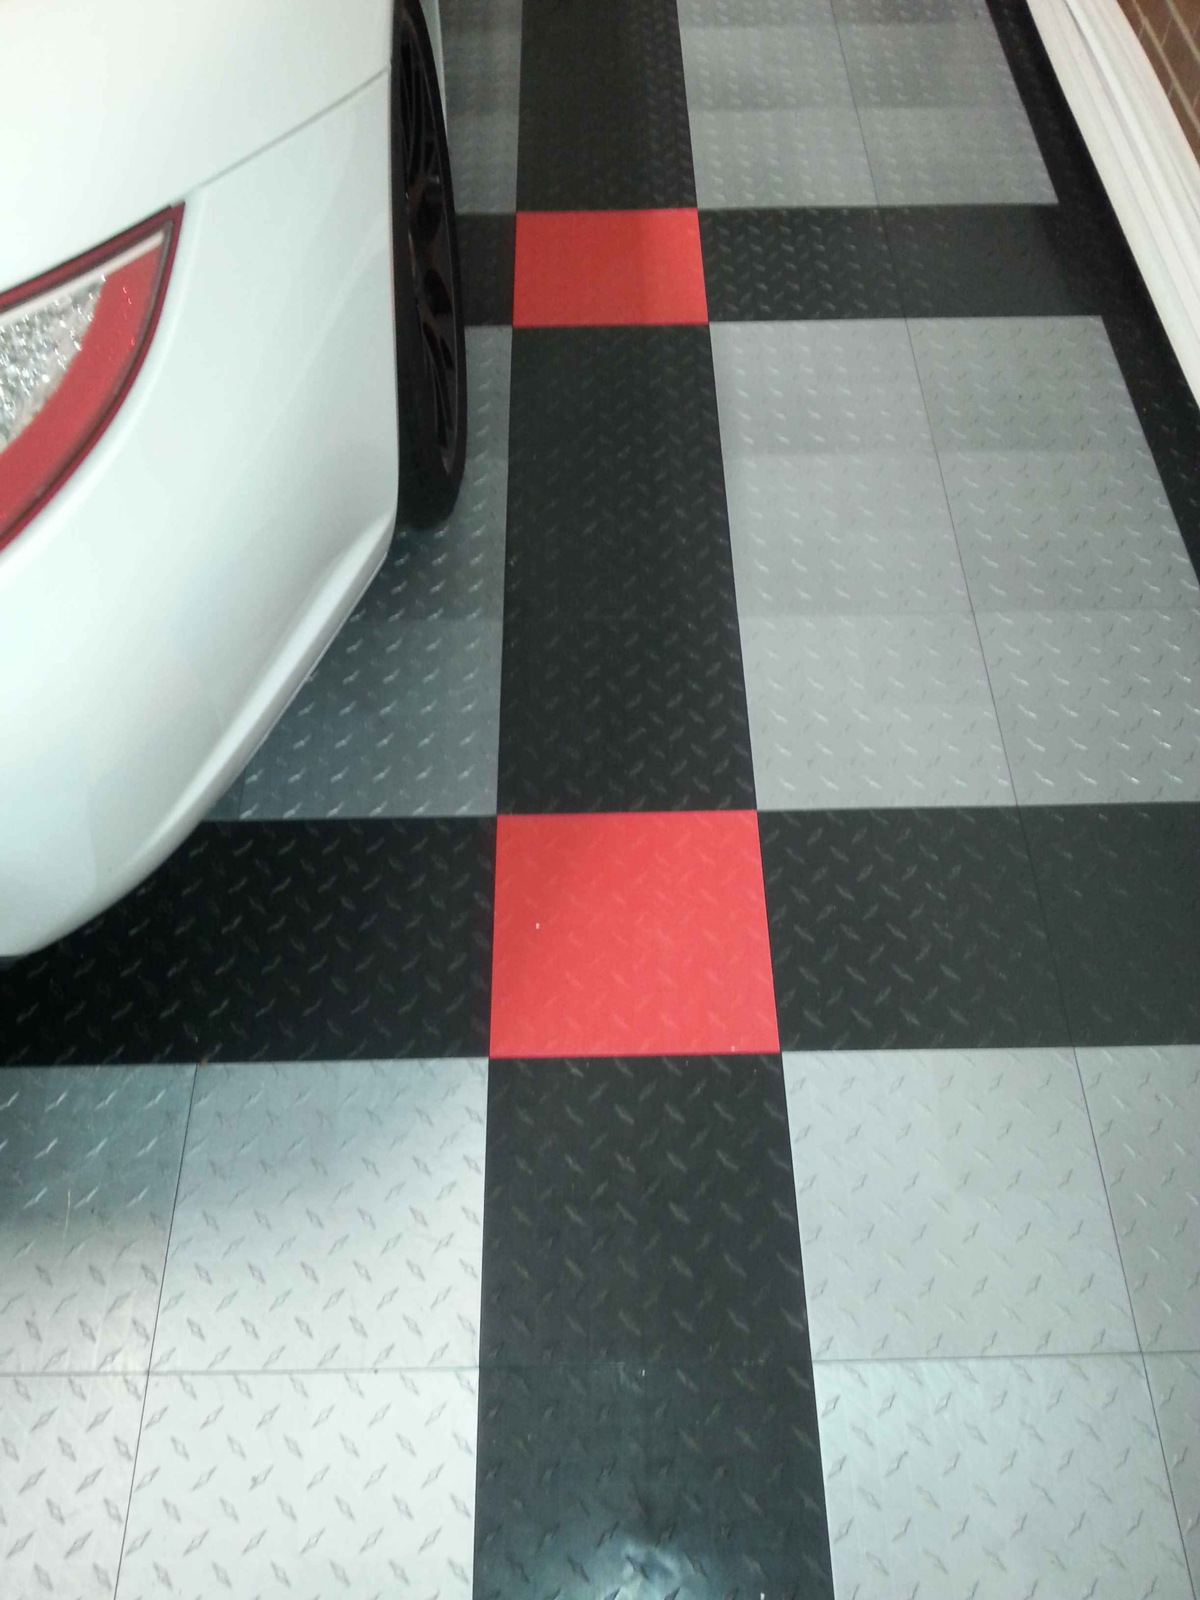 Pantries and other etsco interlocking garage floor tiles are available in many colors and unlimited patterns very cool dailygadgetfo Choice Image